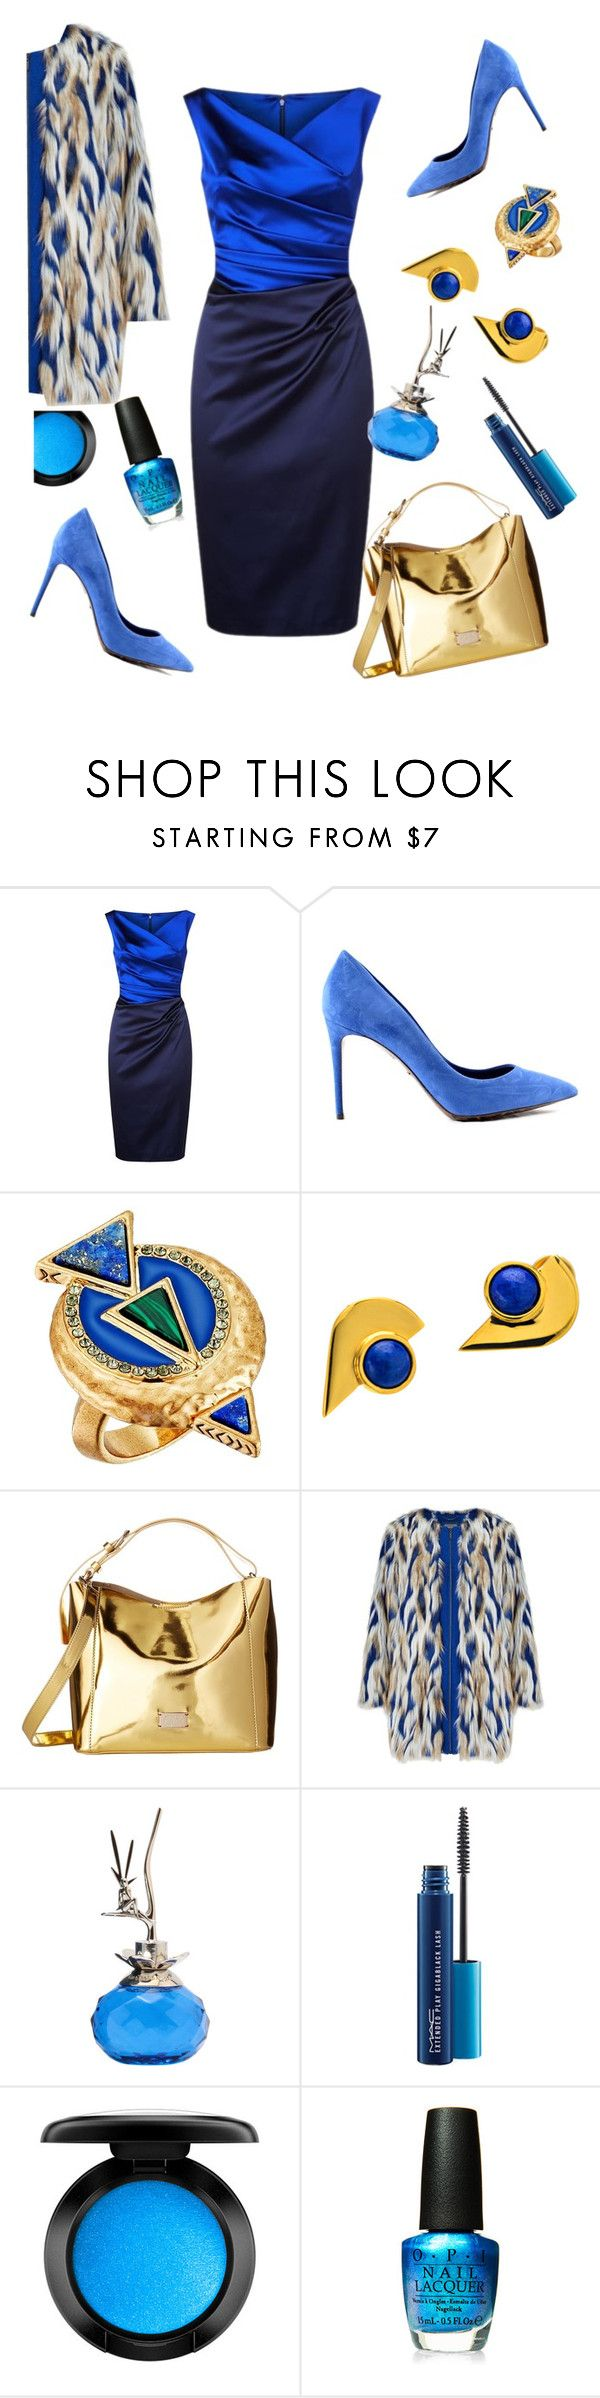 """Untitled #1017"" by lisacom ❤ liked on Polyvore featuring Talbot Runhof, House of Harlow 1960, Golab, Frances Valentine, Van Cleef & Arpels, MAC Cosmetics and OPI"